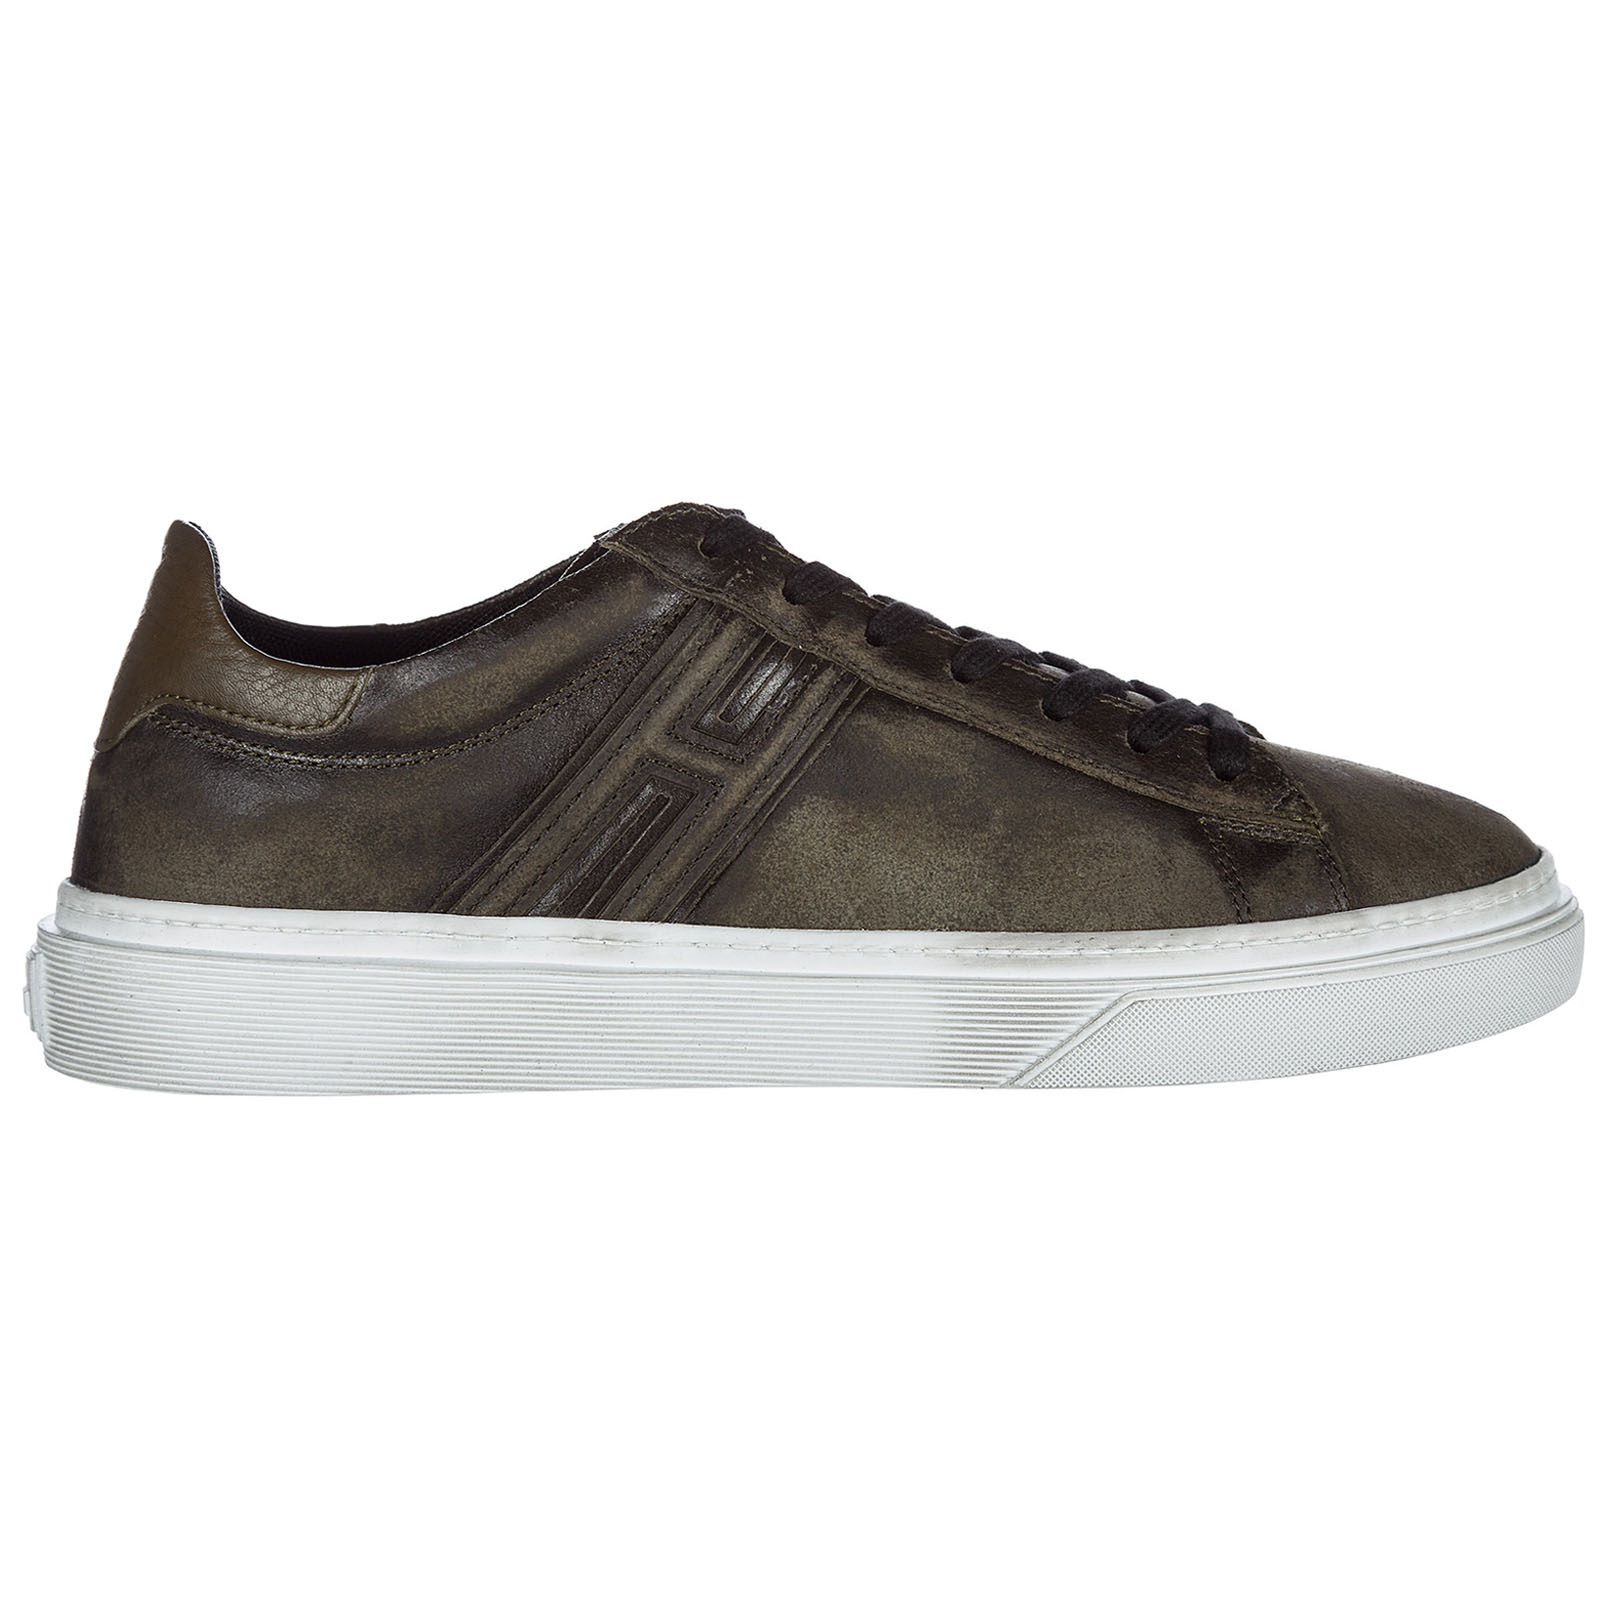 the latest 96333 d502b Scarpe sneakers uomo in pelle h340